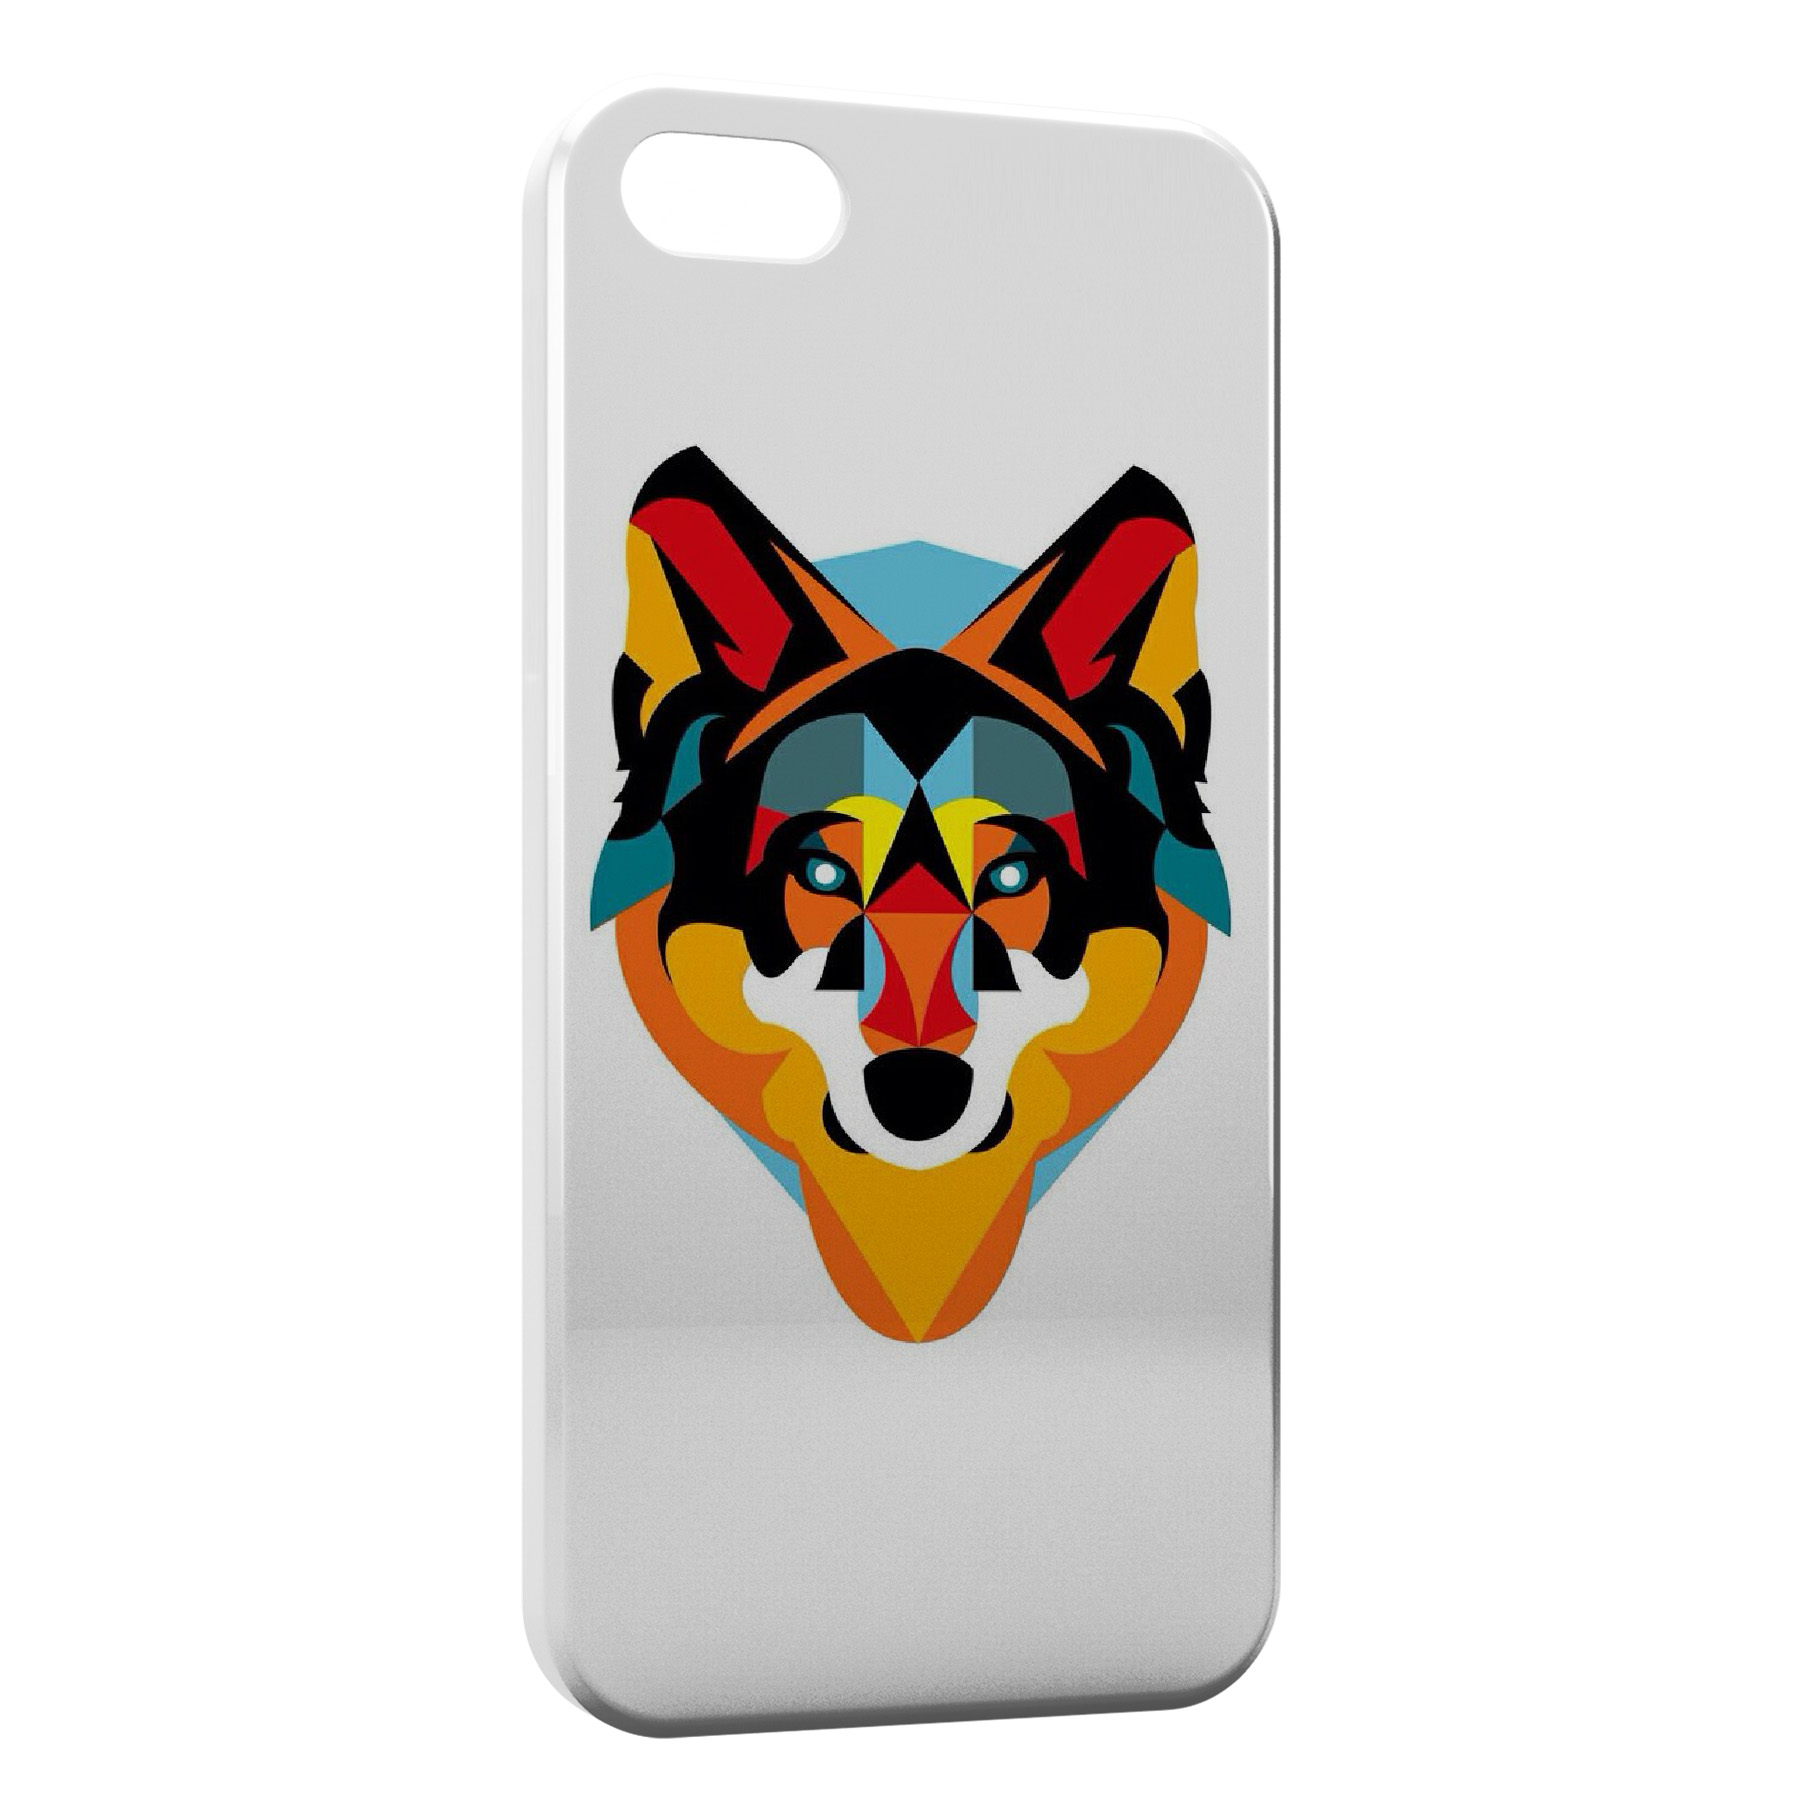 coque iphone 6 renard